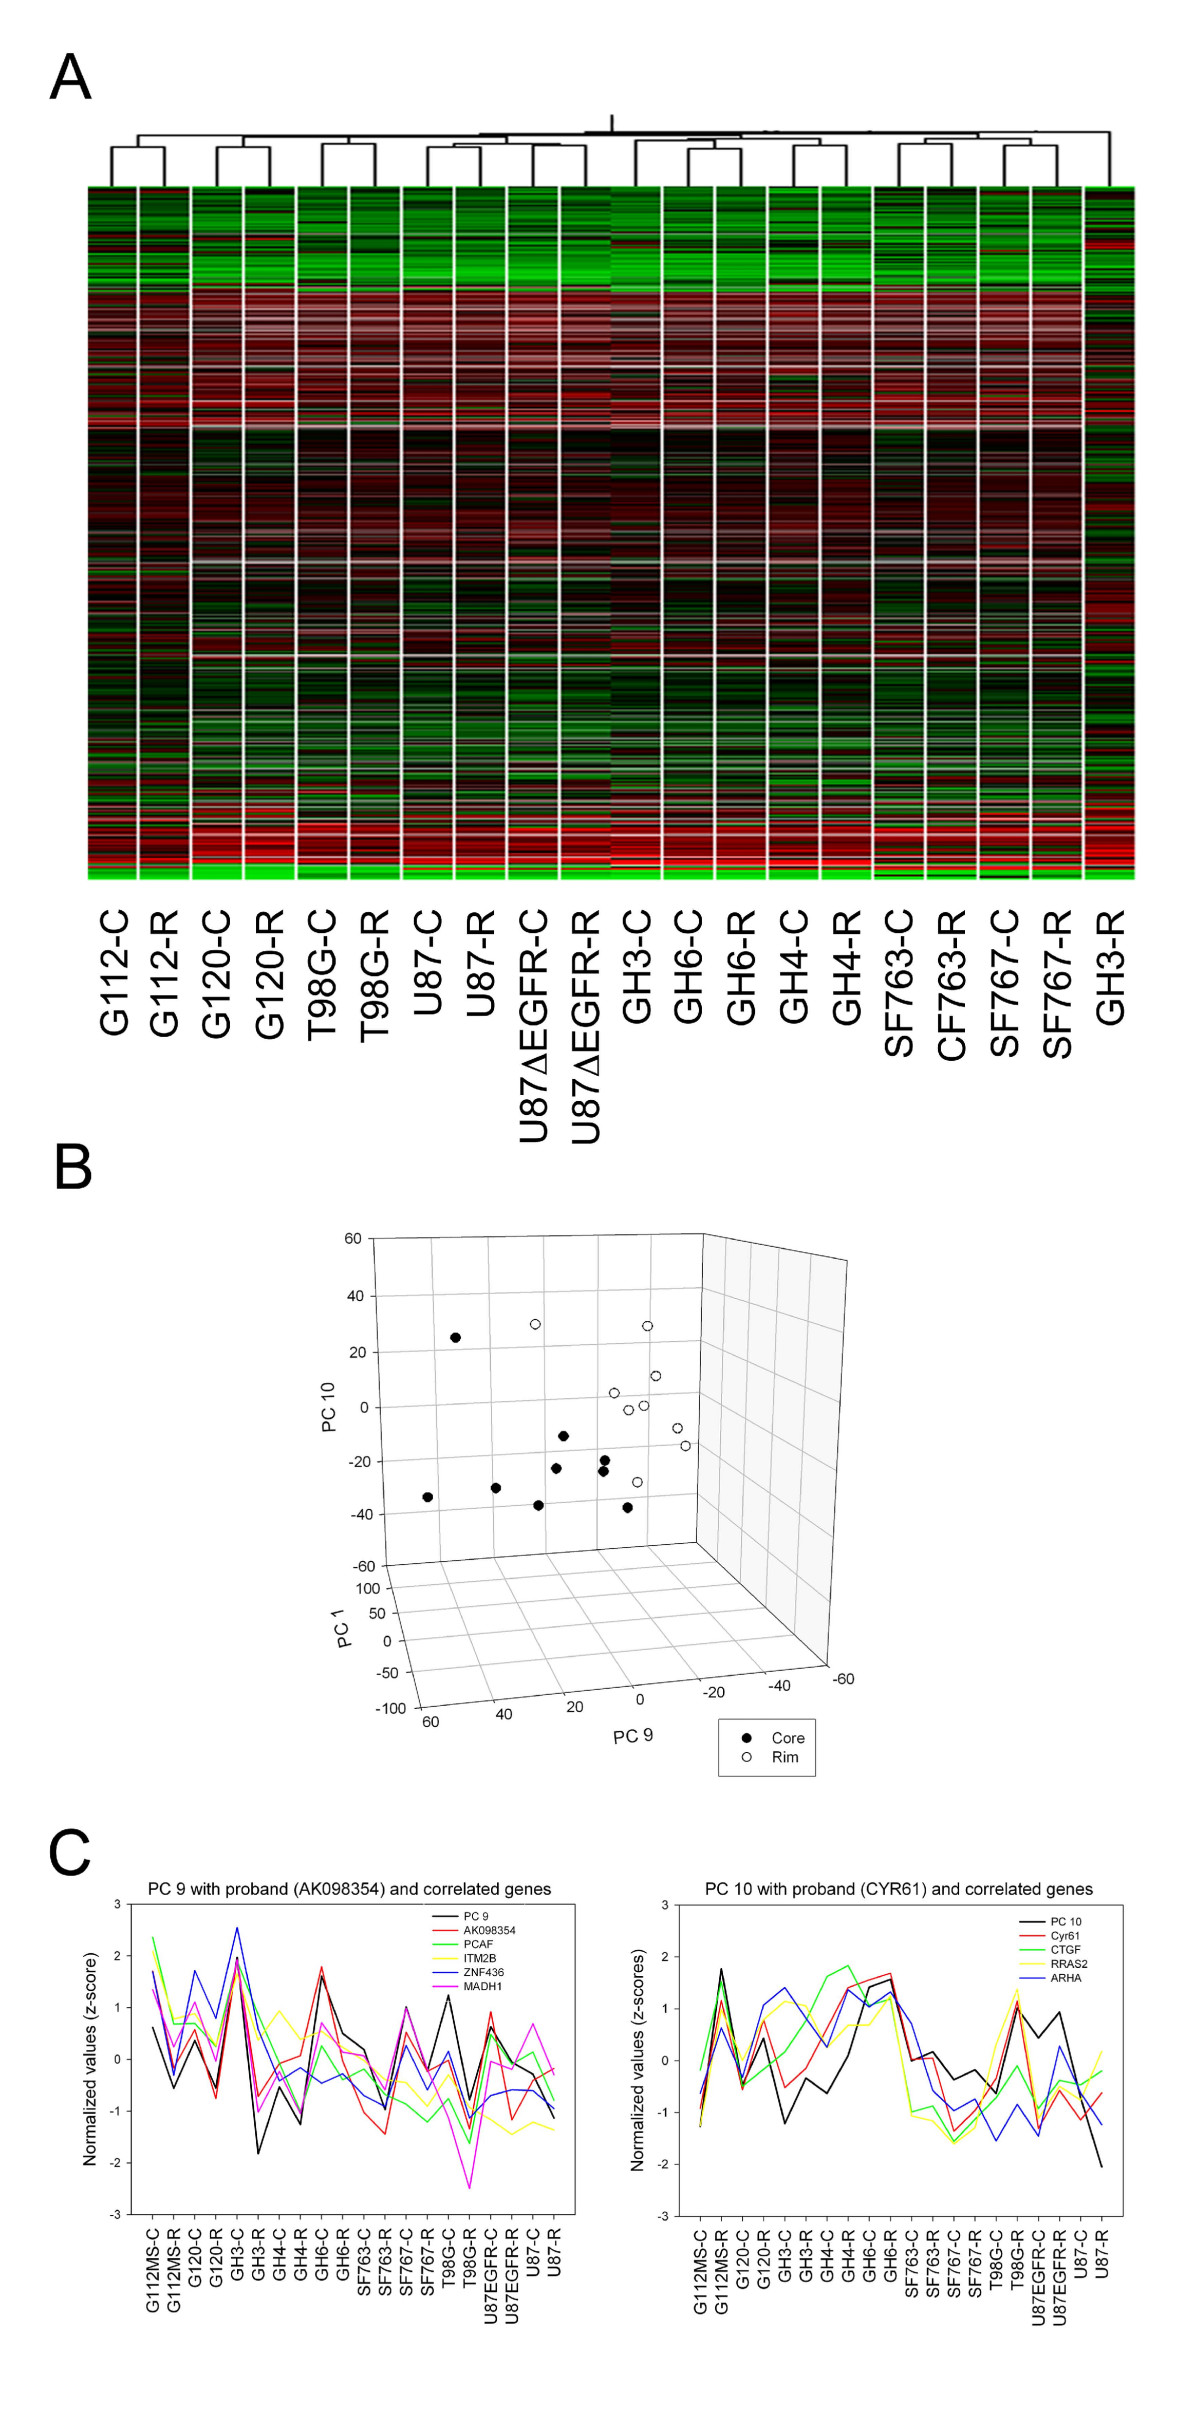 http://static-content.springer.com/image/art%3A10.1186%2F1471-2164-9-54/MediaObjects/12864_2007_Article_1248_Fig1_HTML.jpg